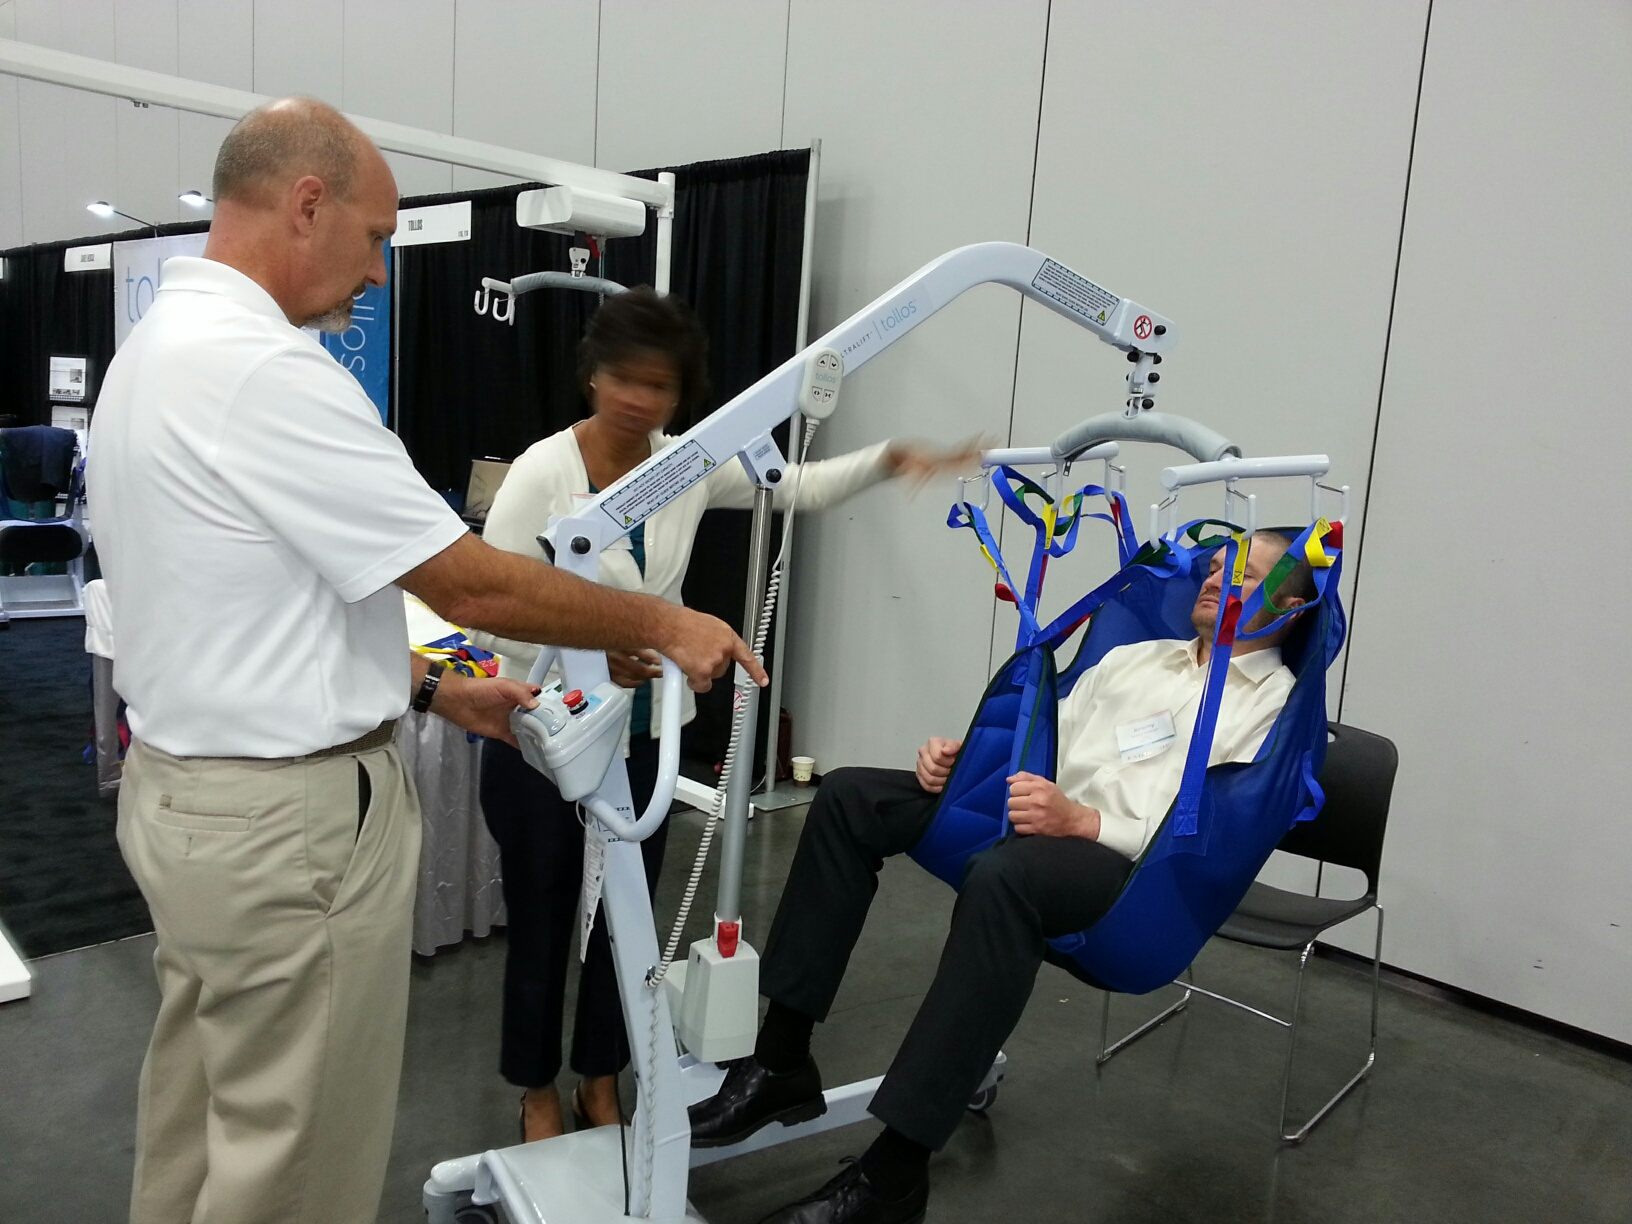 Demonstrated At Healthcare Ergonomics Conf On Safe Patient